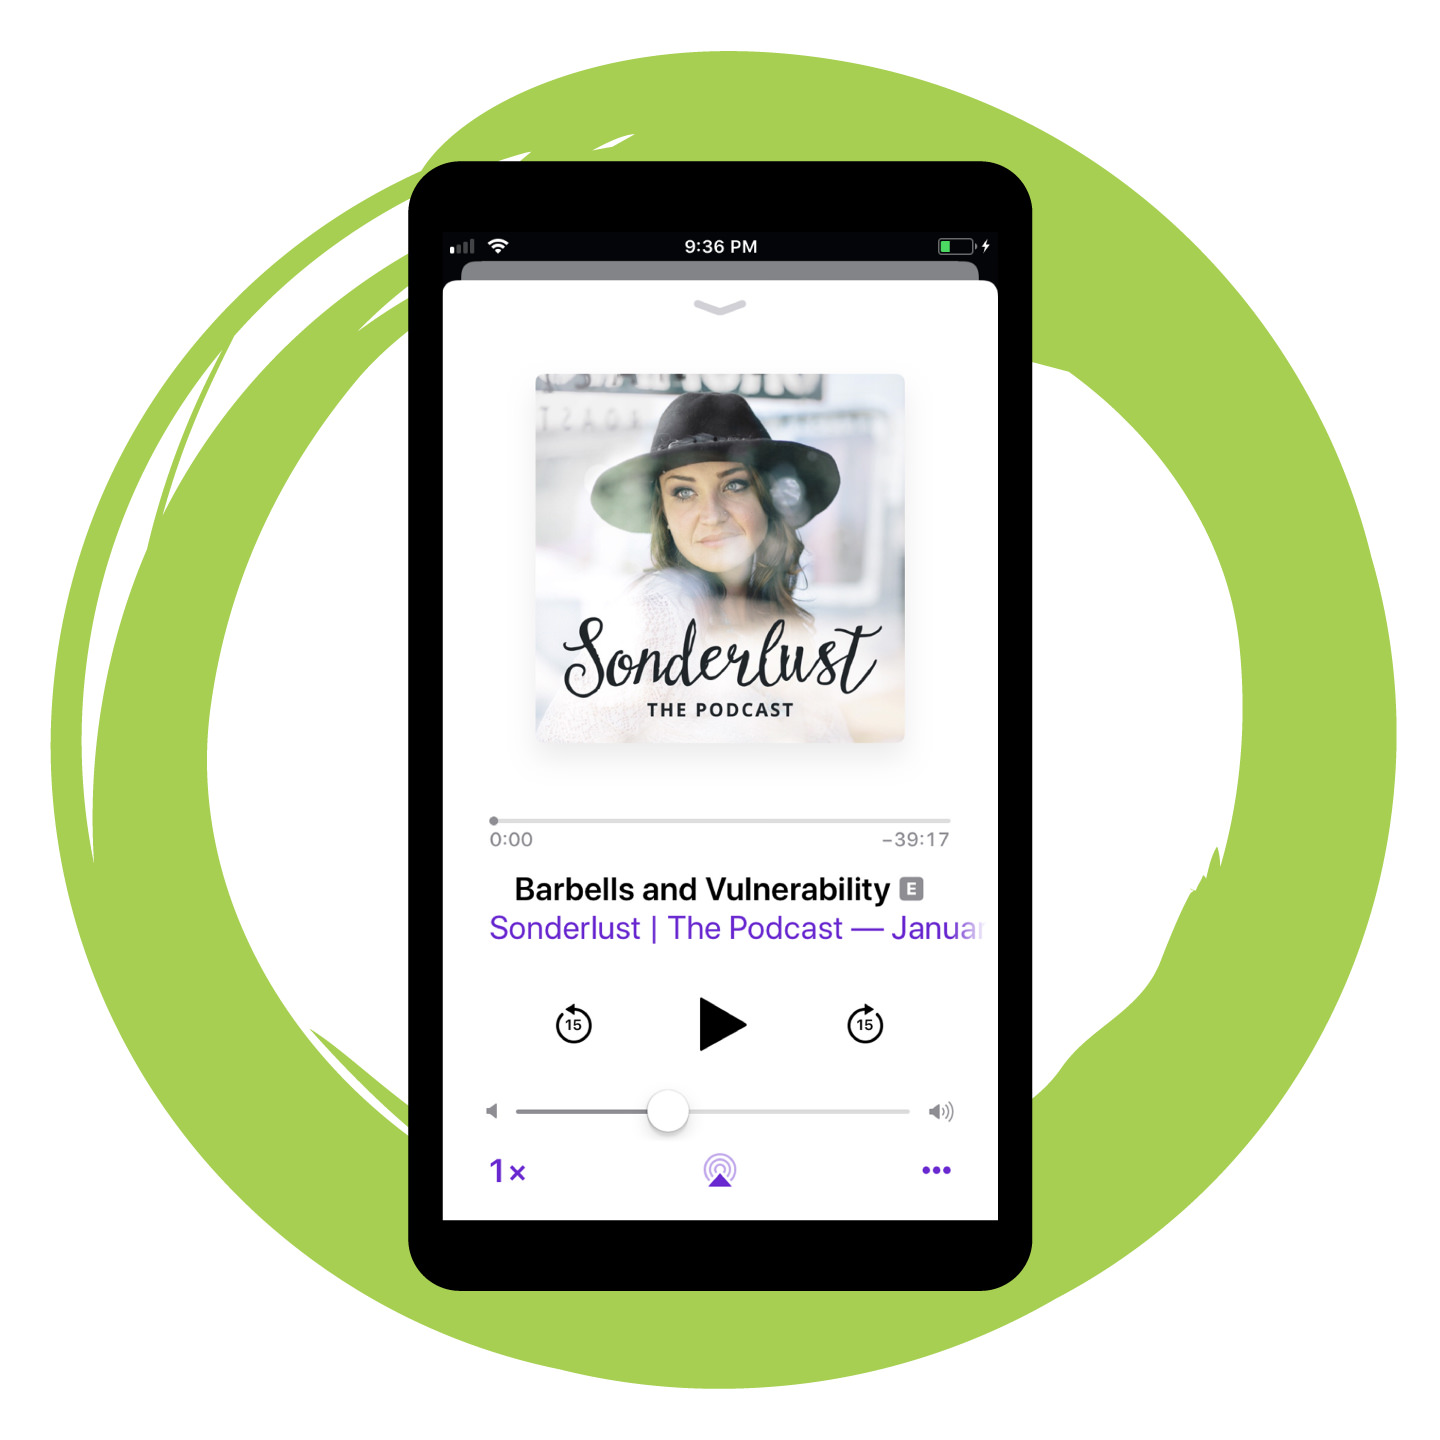 sonderlust-the-podcast